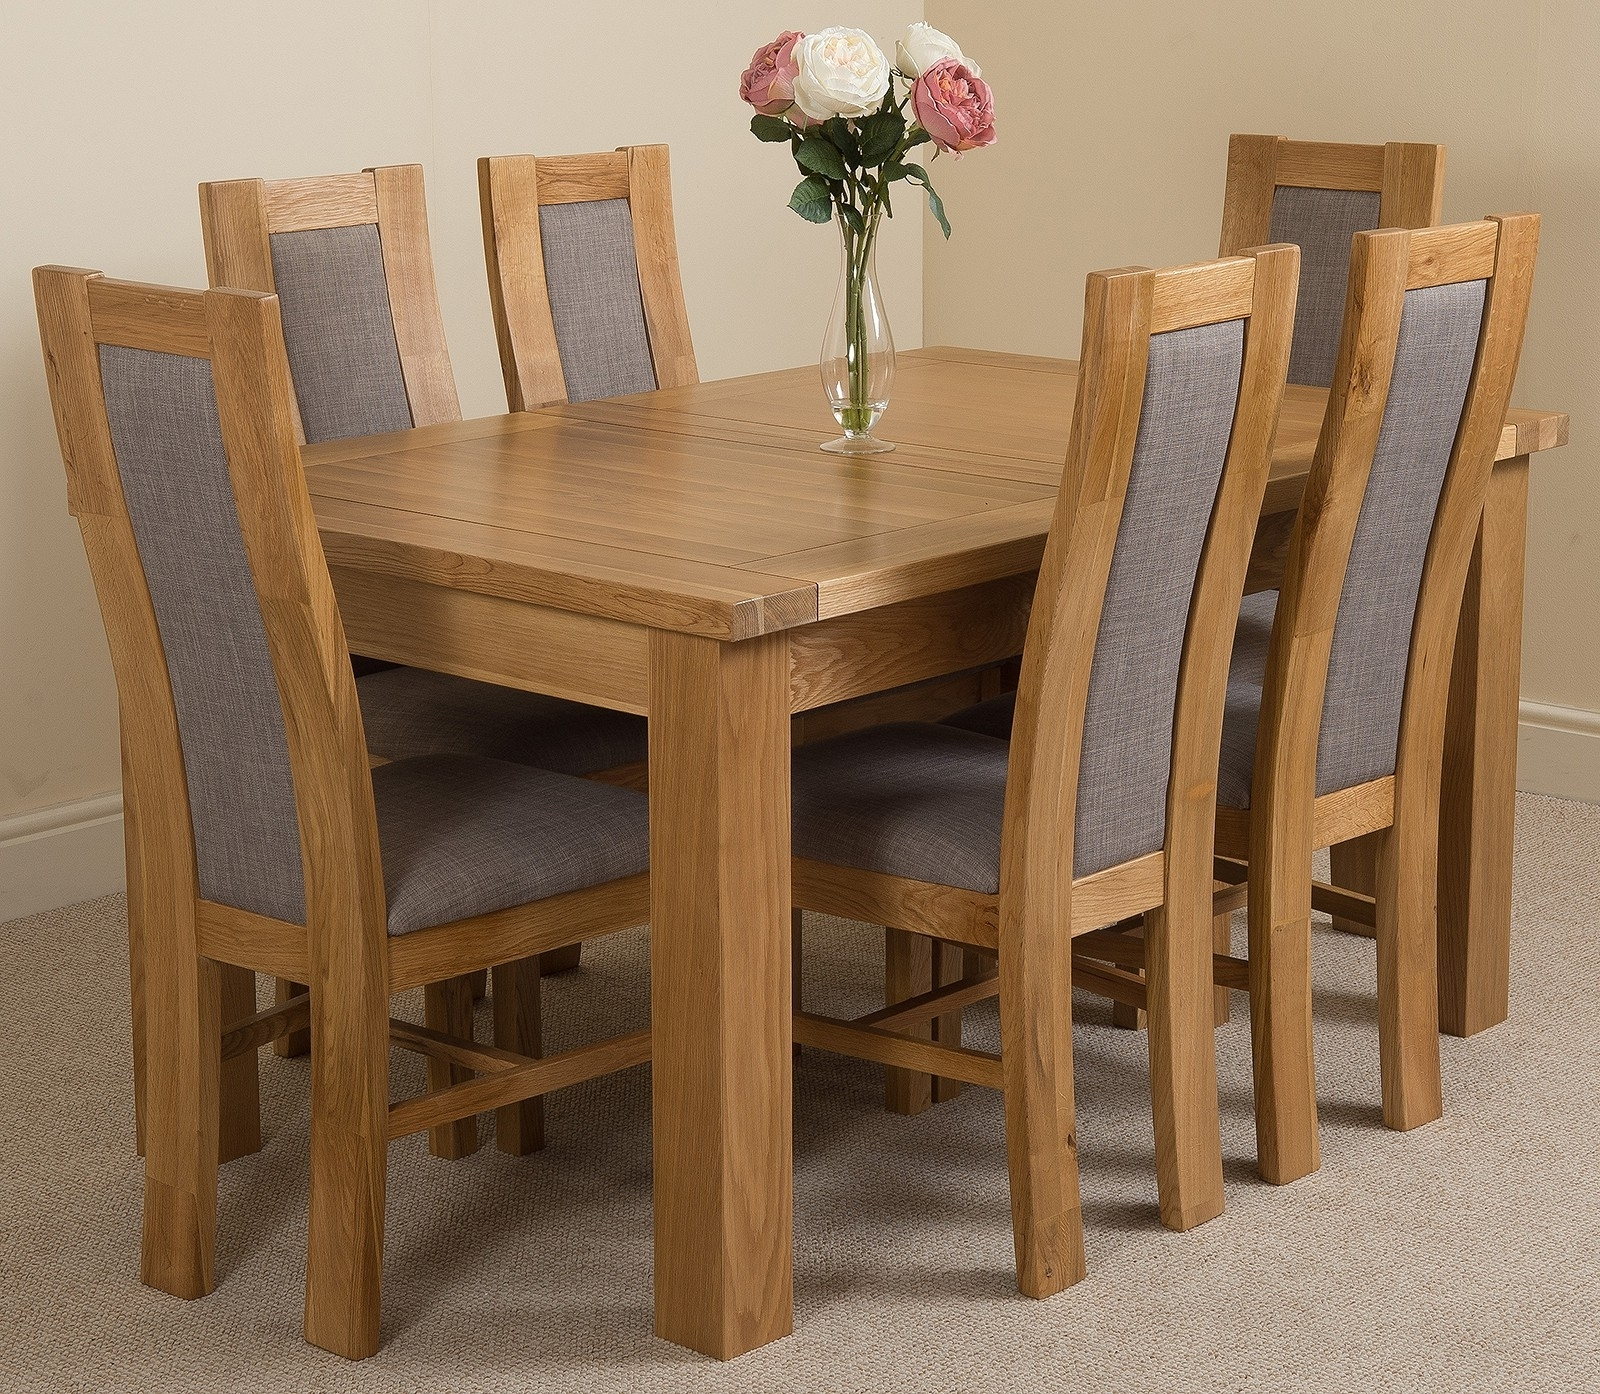 Oak Furniture King In Latest Oak Extending Dining Tables And 6 Chairs (View 22 of 25)